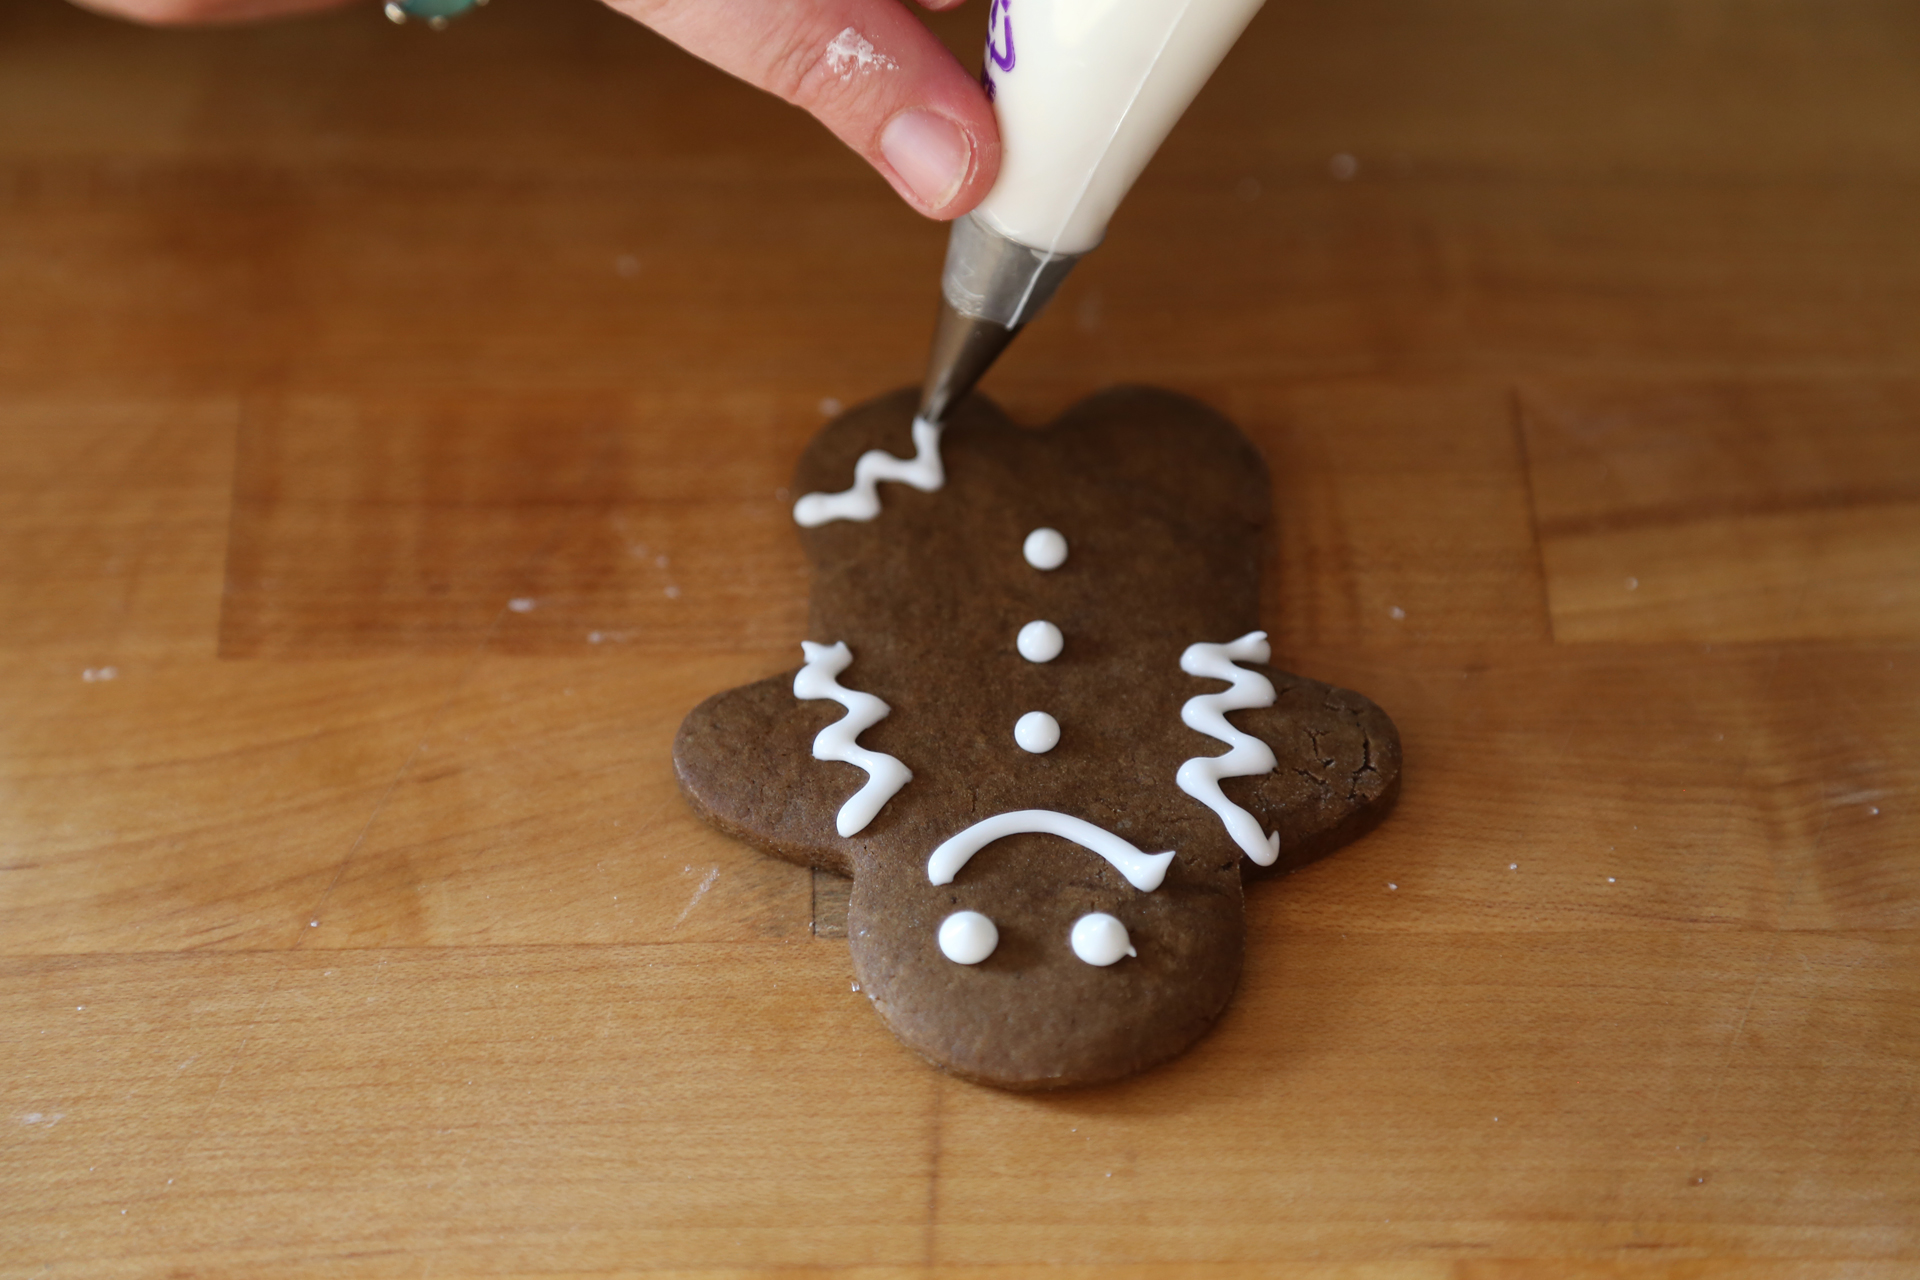 Transfer the icing to a small piping bag with a very small plain tip. Decorate the cookies with the royal icing as you like.